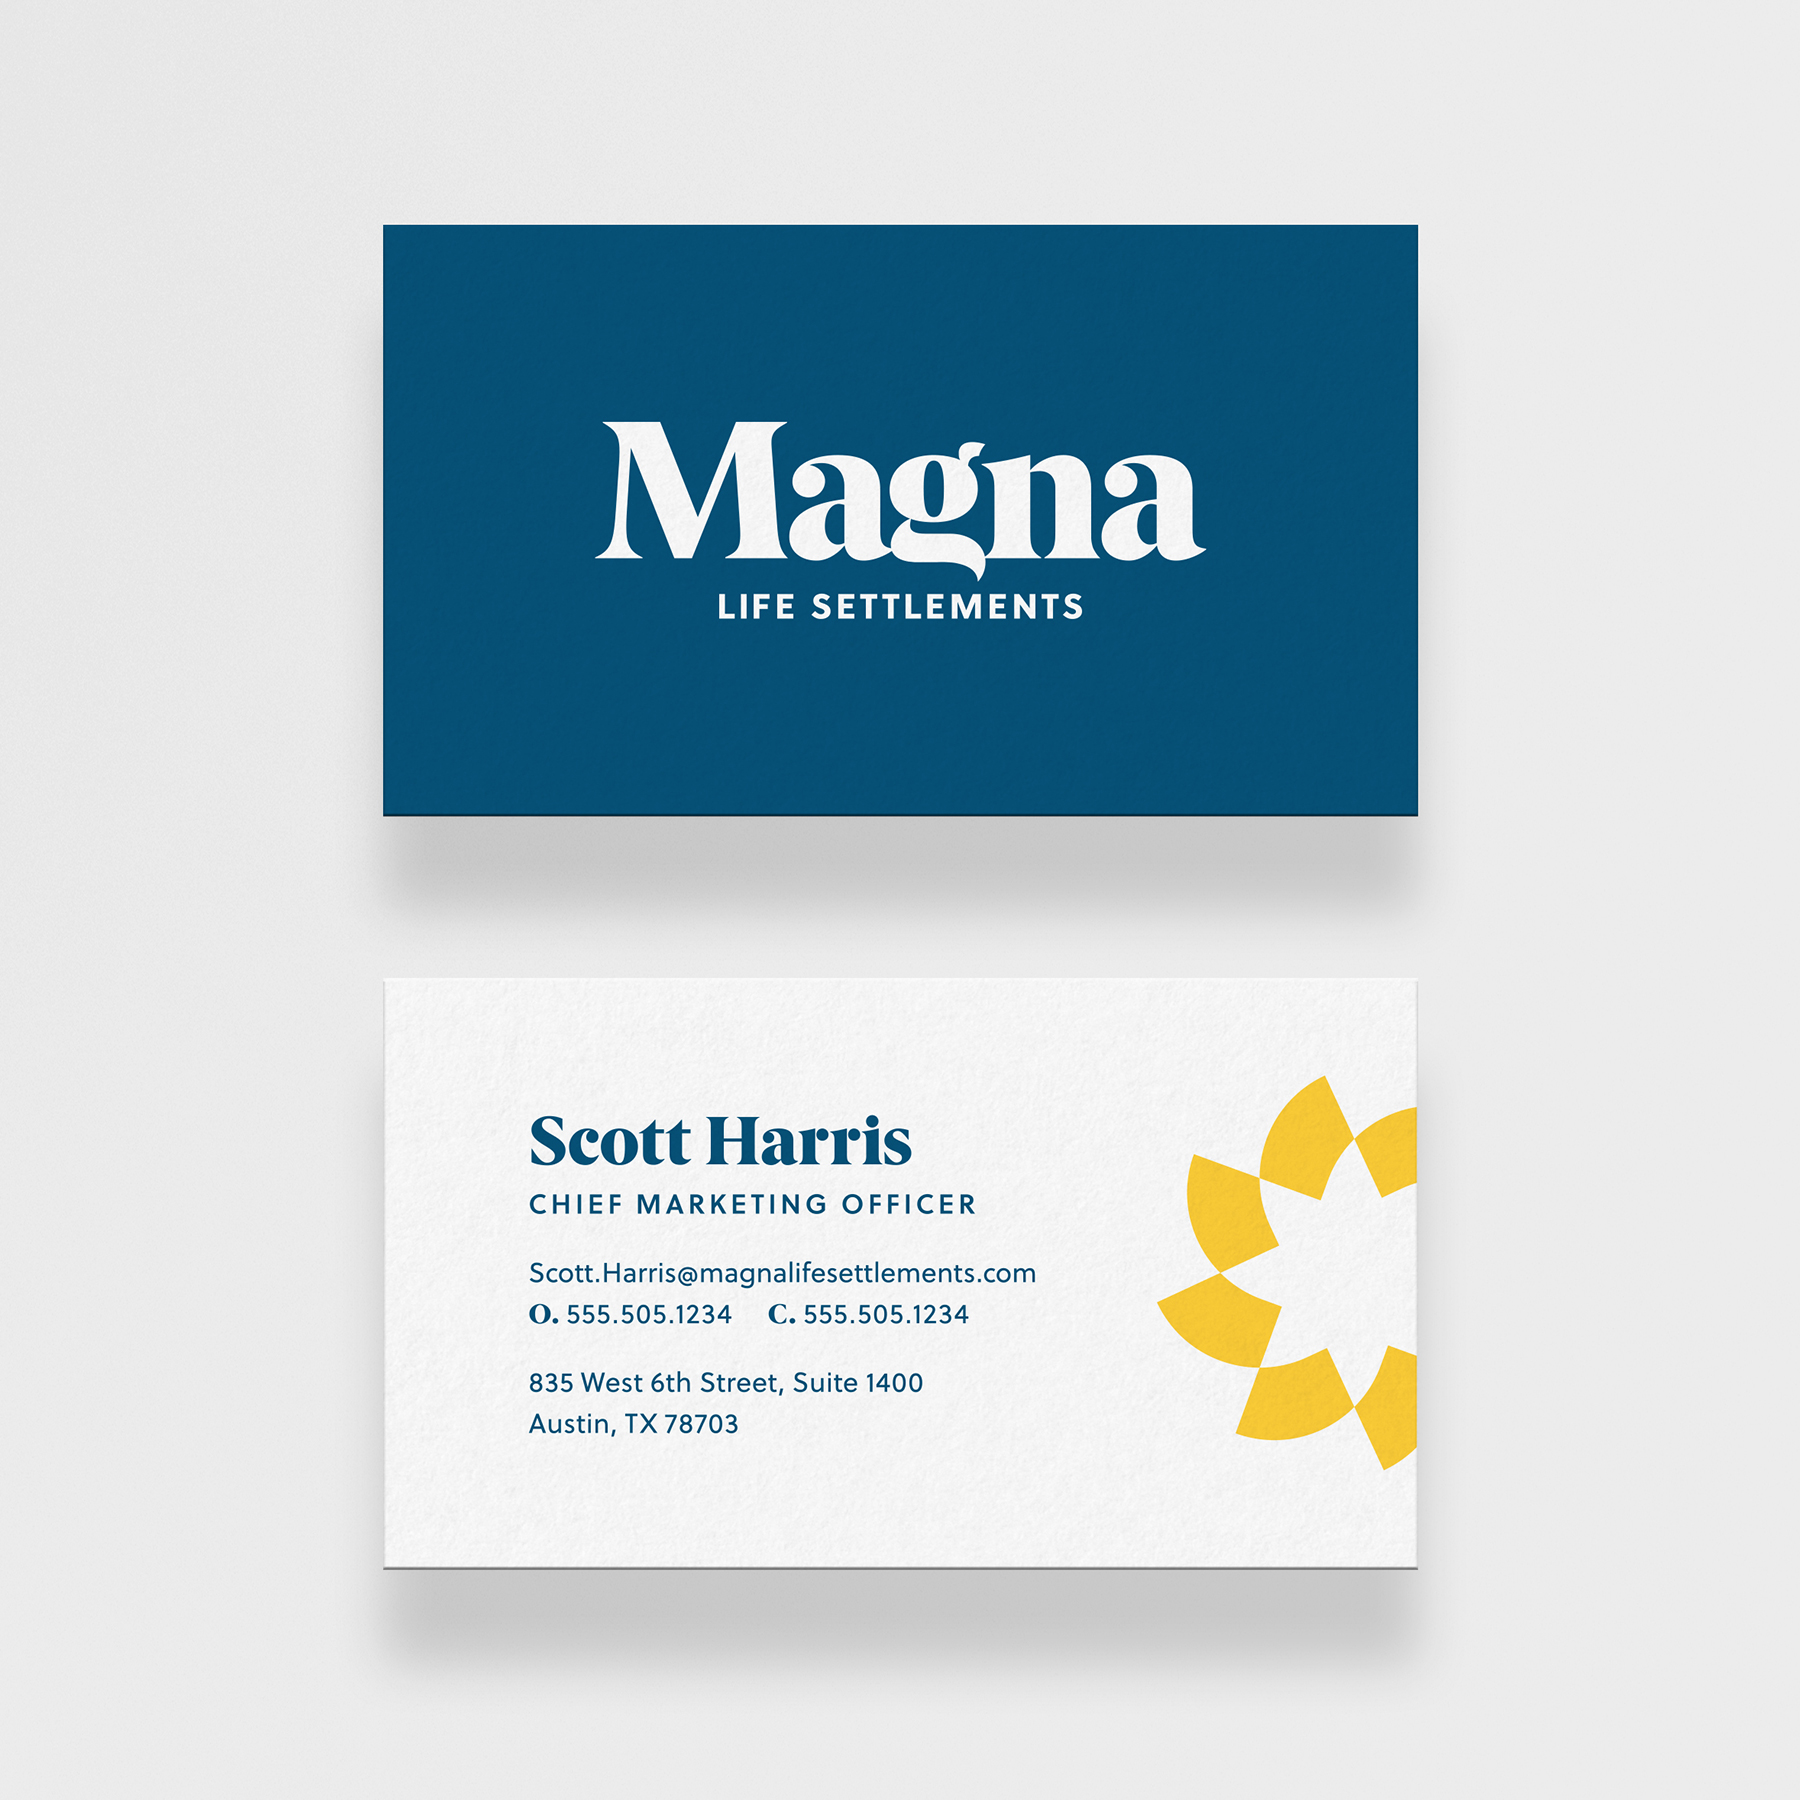 Magna Portfolio Small BusinessCards 1